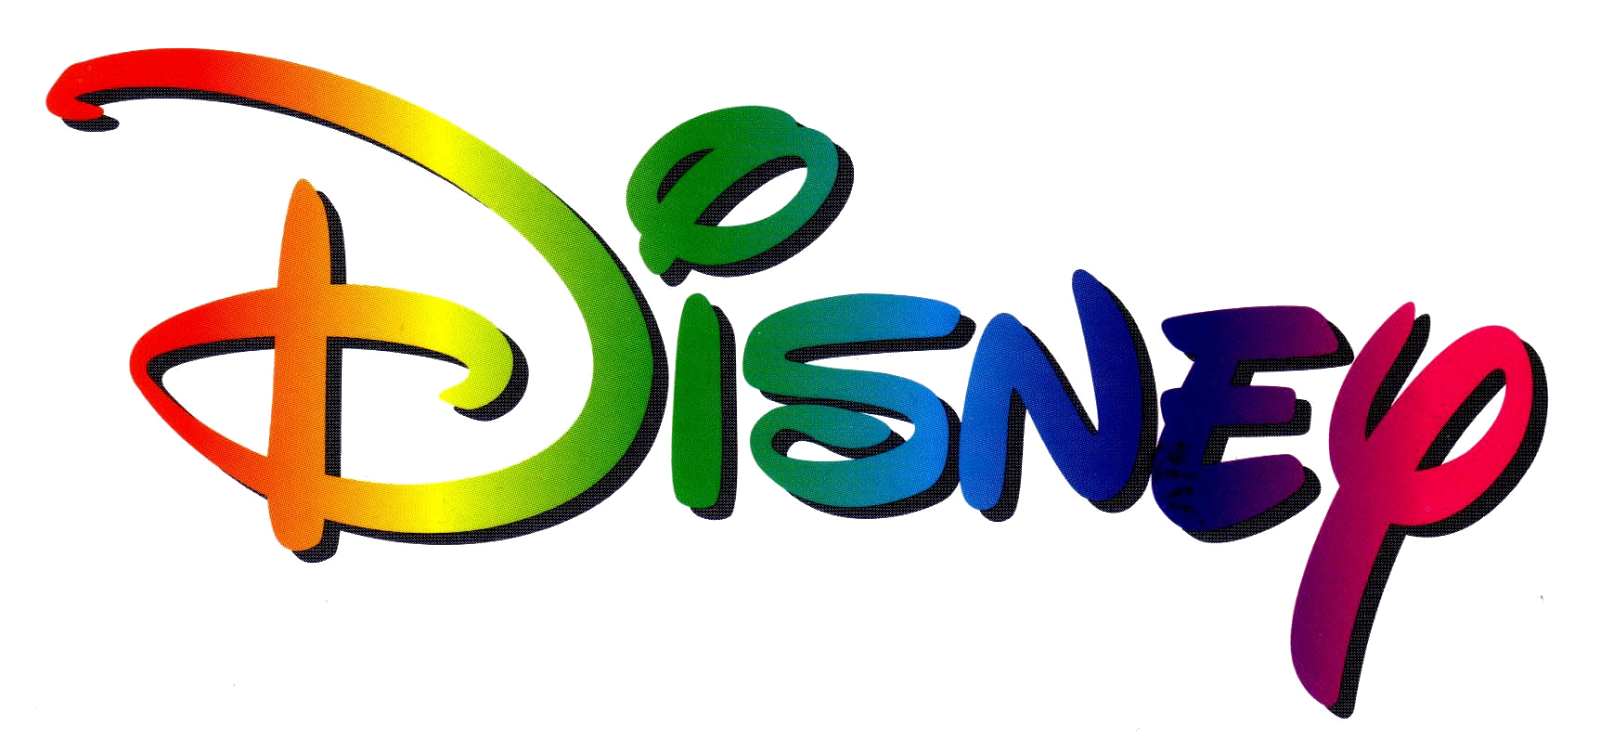 Disney-walt-disney-50-animated-motion-pictures-21757269-1724-796.png